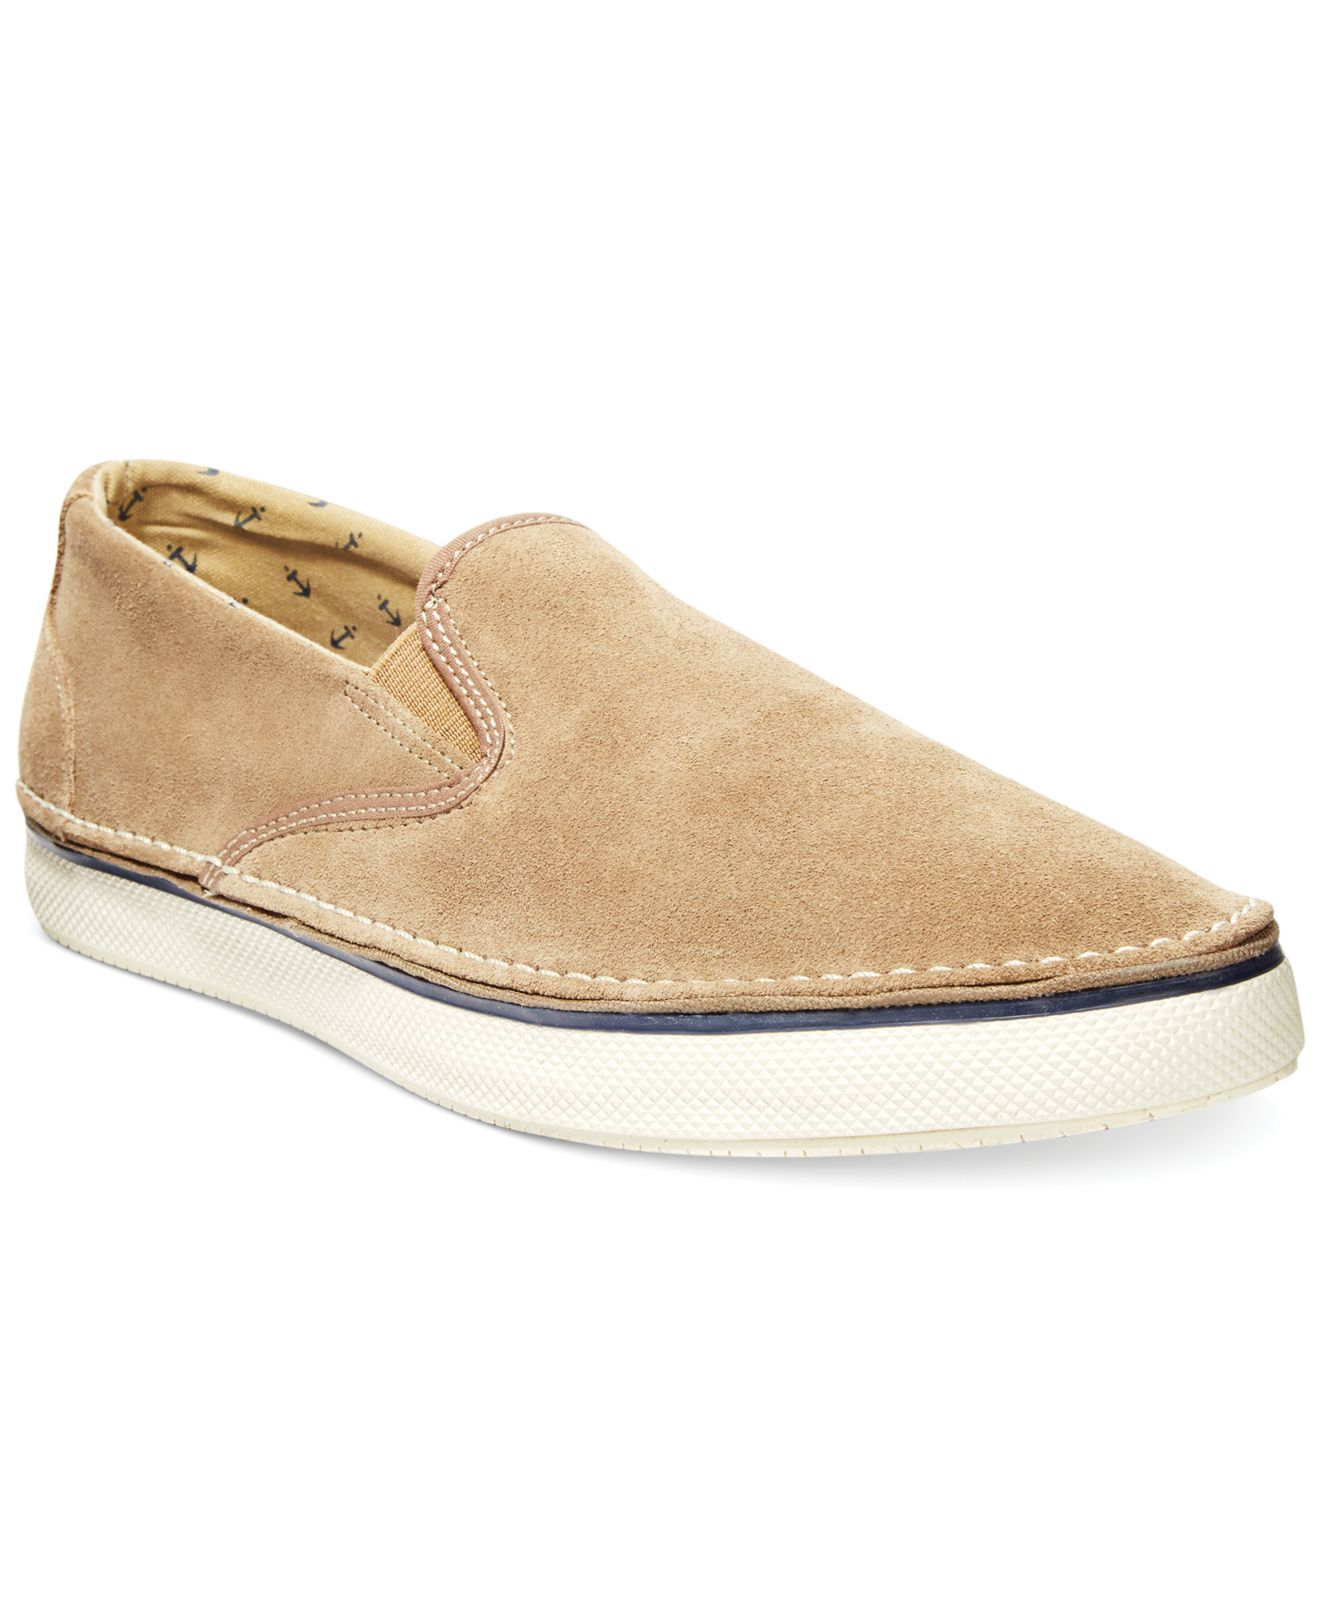 sperry top sider slip on shoes in beige for